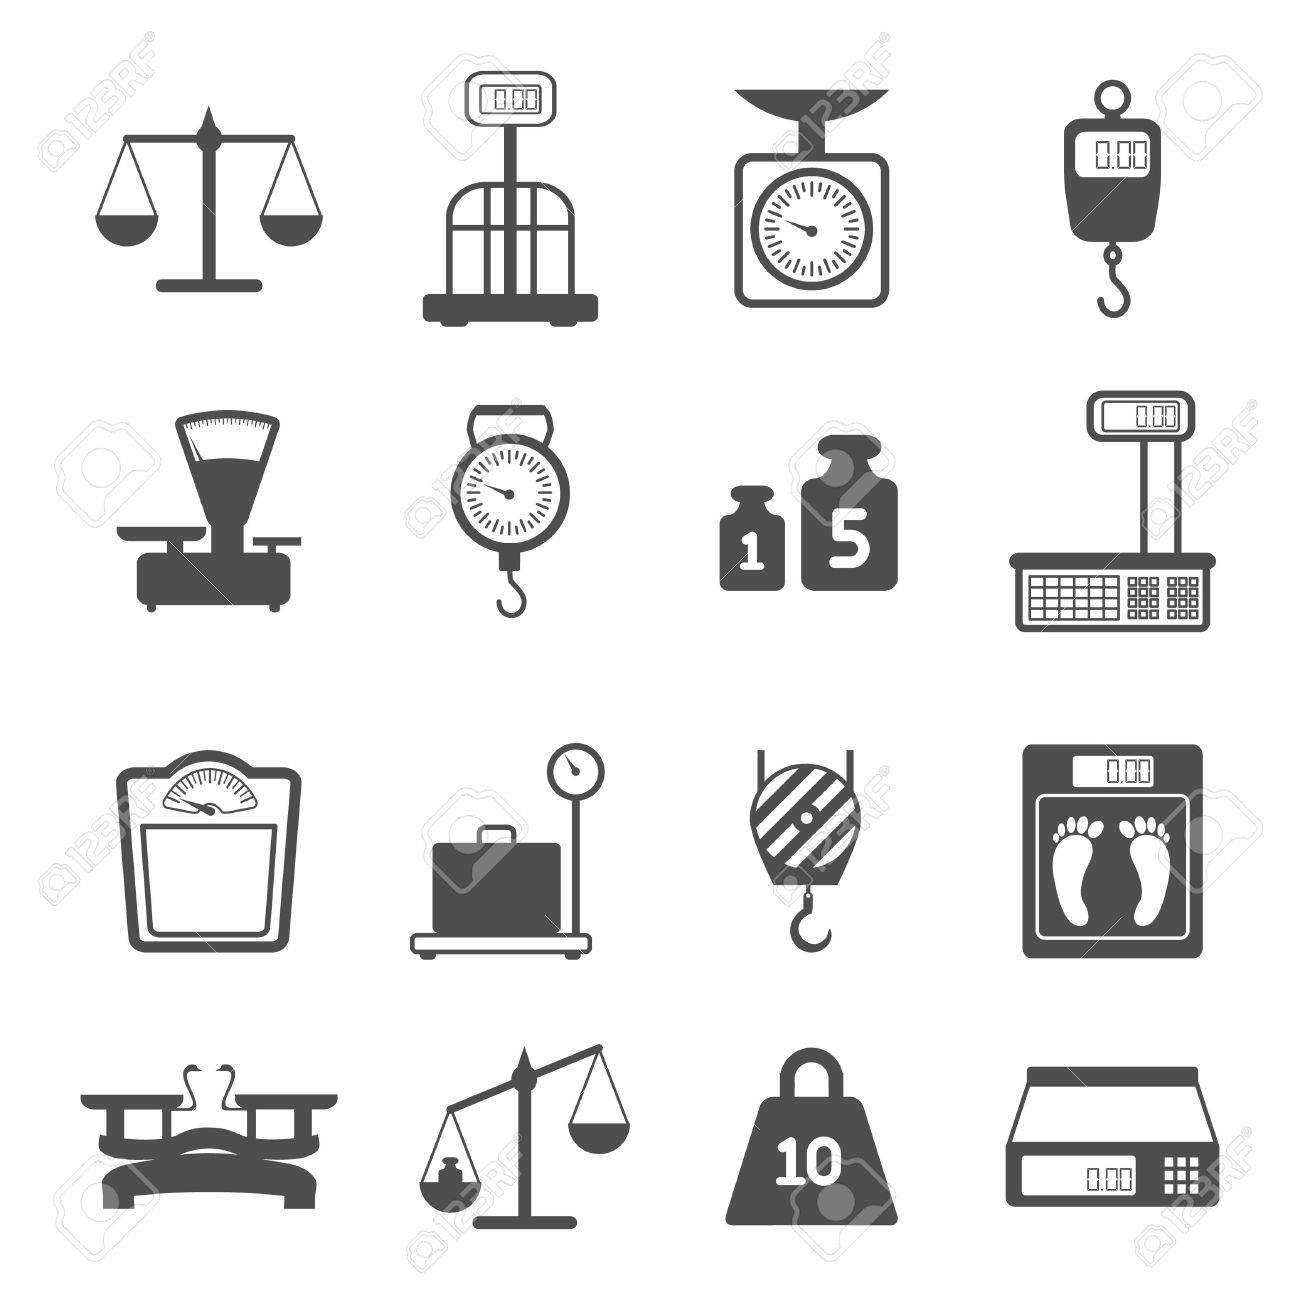 Weight scales for trade pharmacy shopping measurement isolated vector illustration - 27595502